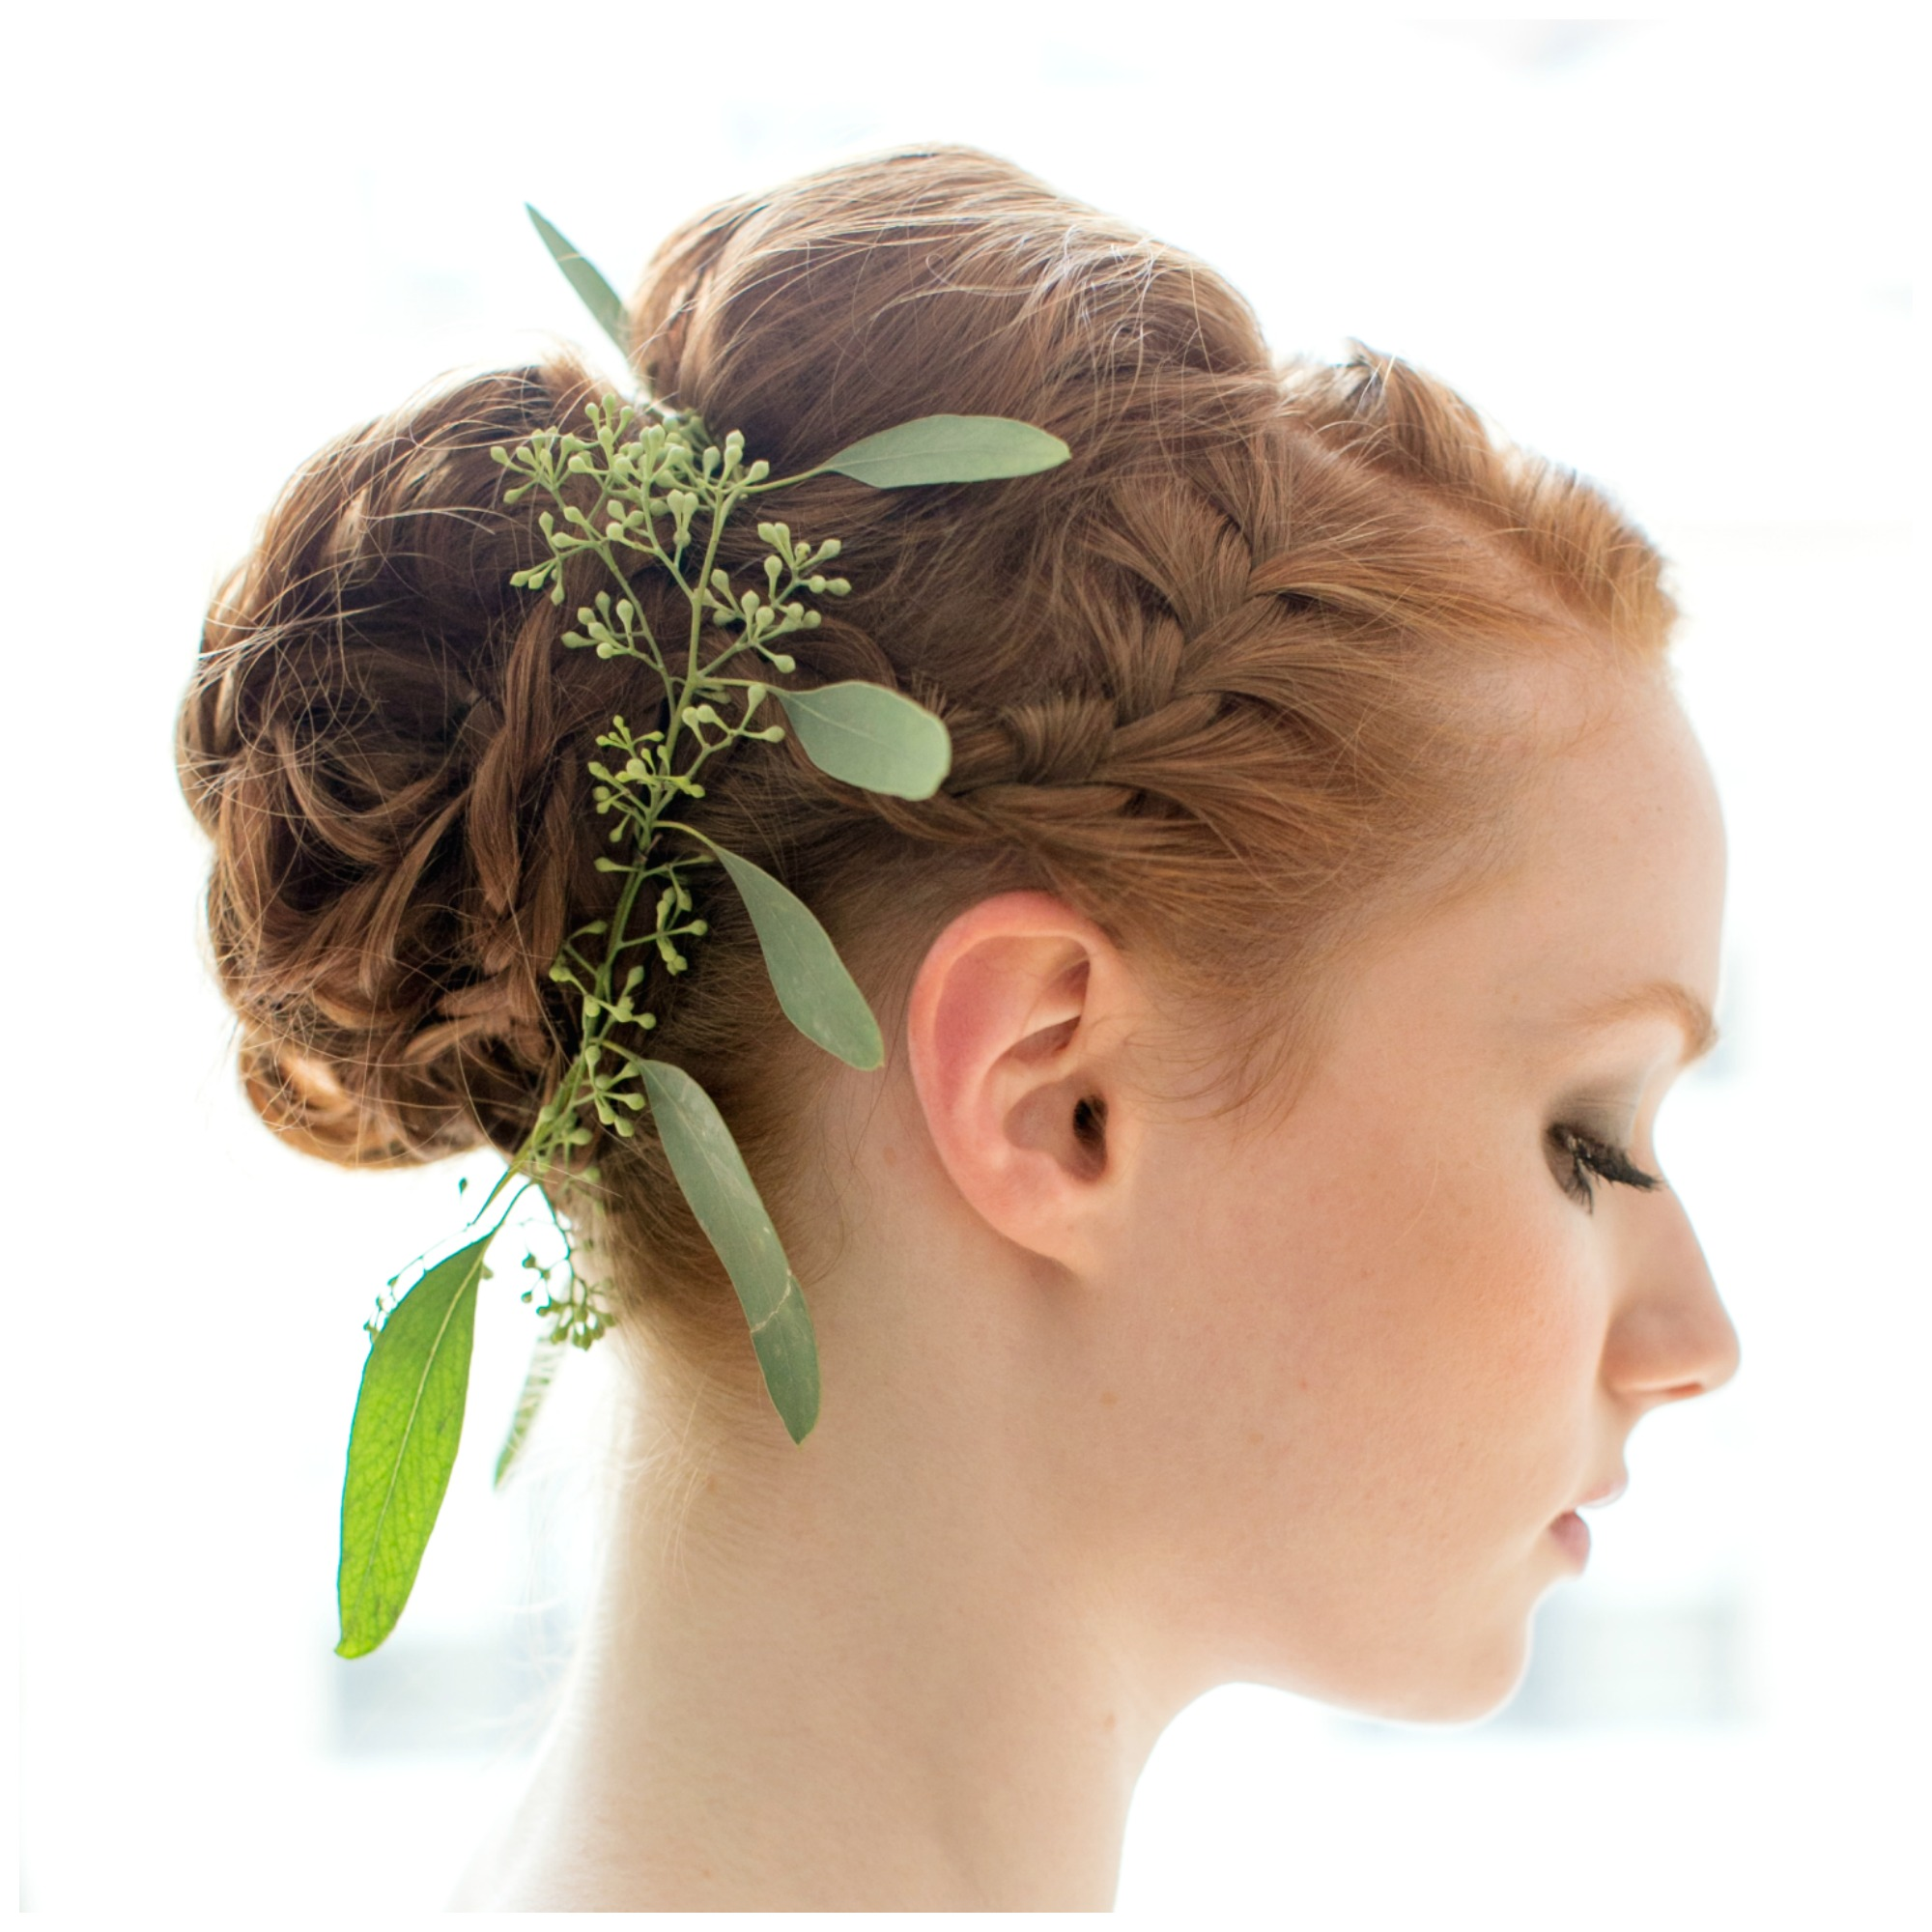 Bride with red hair knotted into braided bun, decorated with leaves